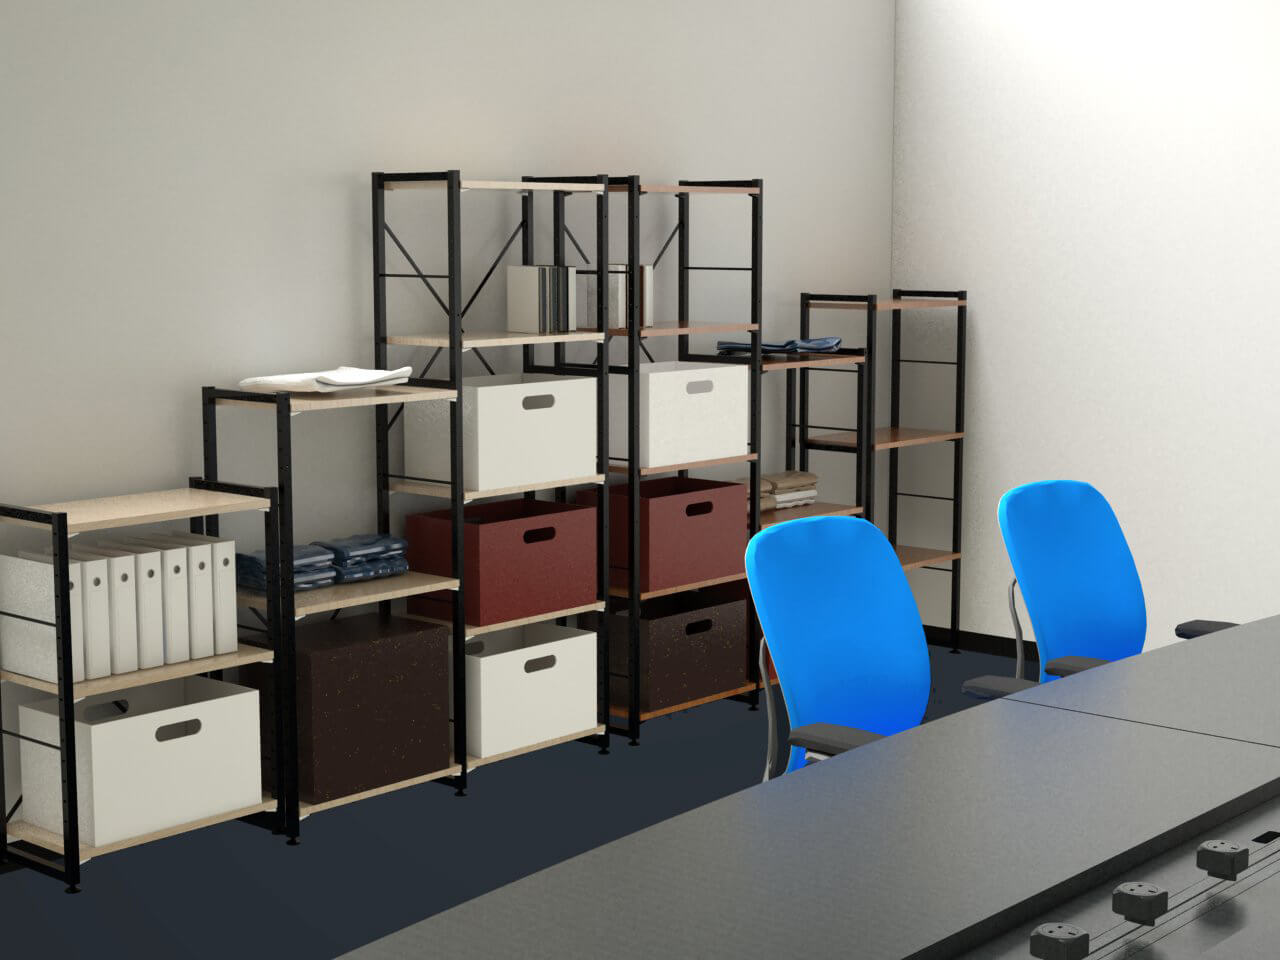 storage shelving units in the meeting room